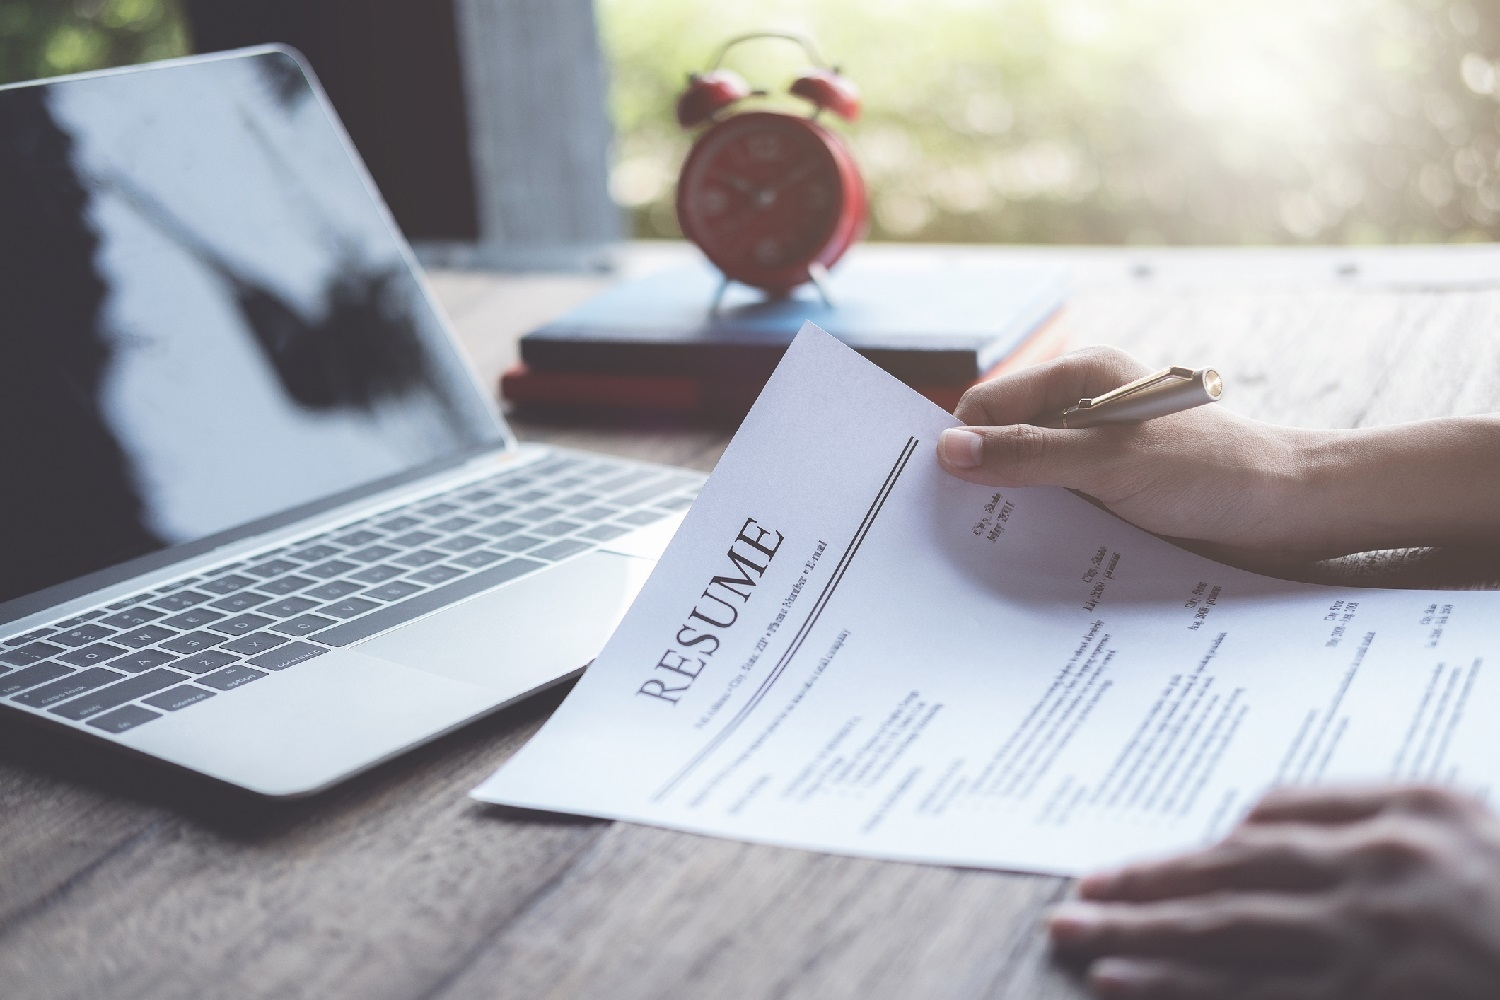 resume writing tips make your stand out businessnewsdaily better sample for building Resume Writing A Better Resume